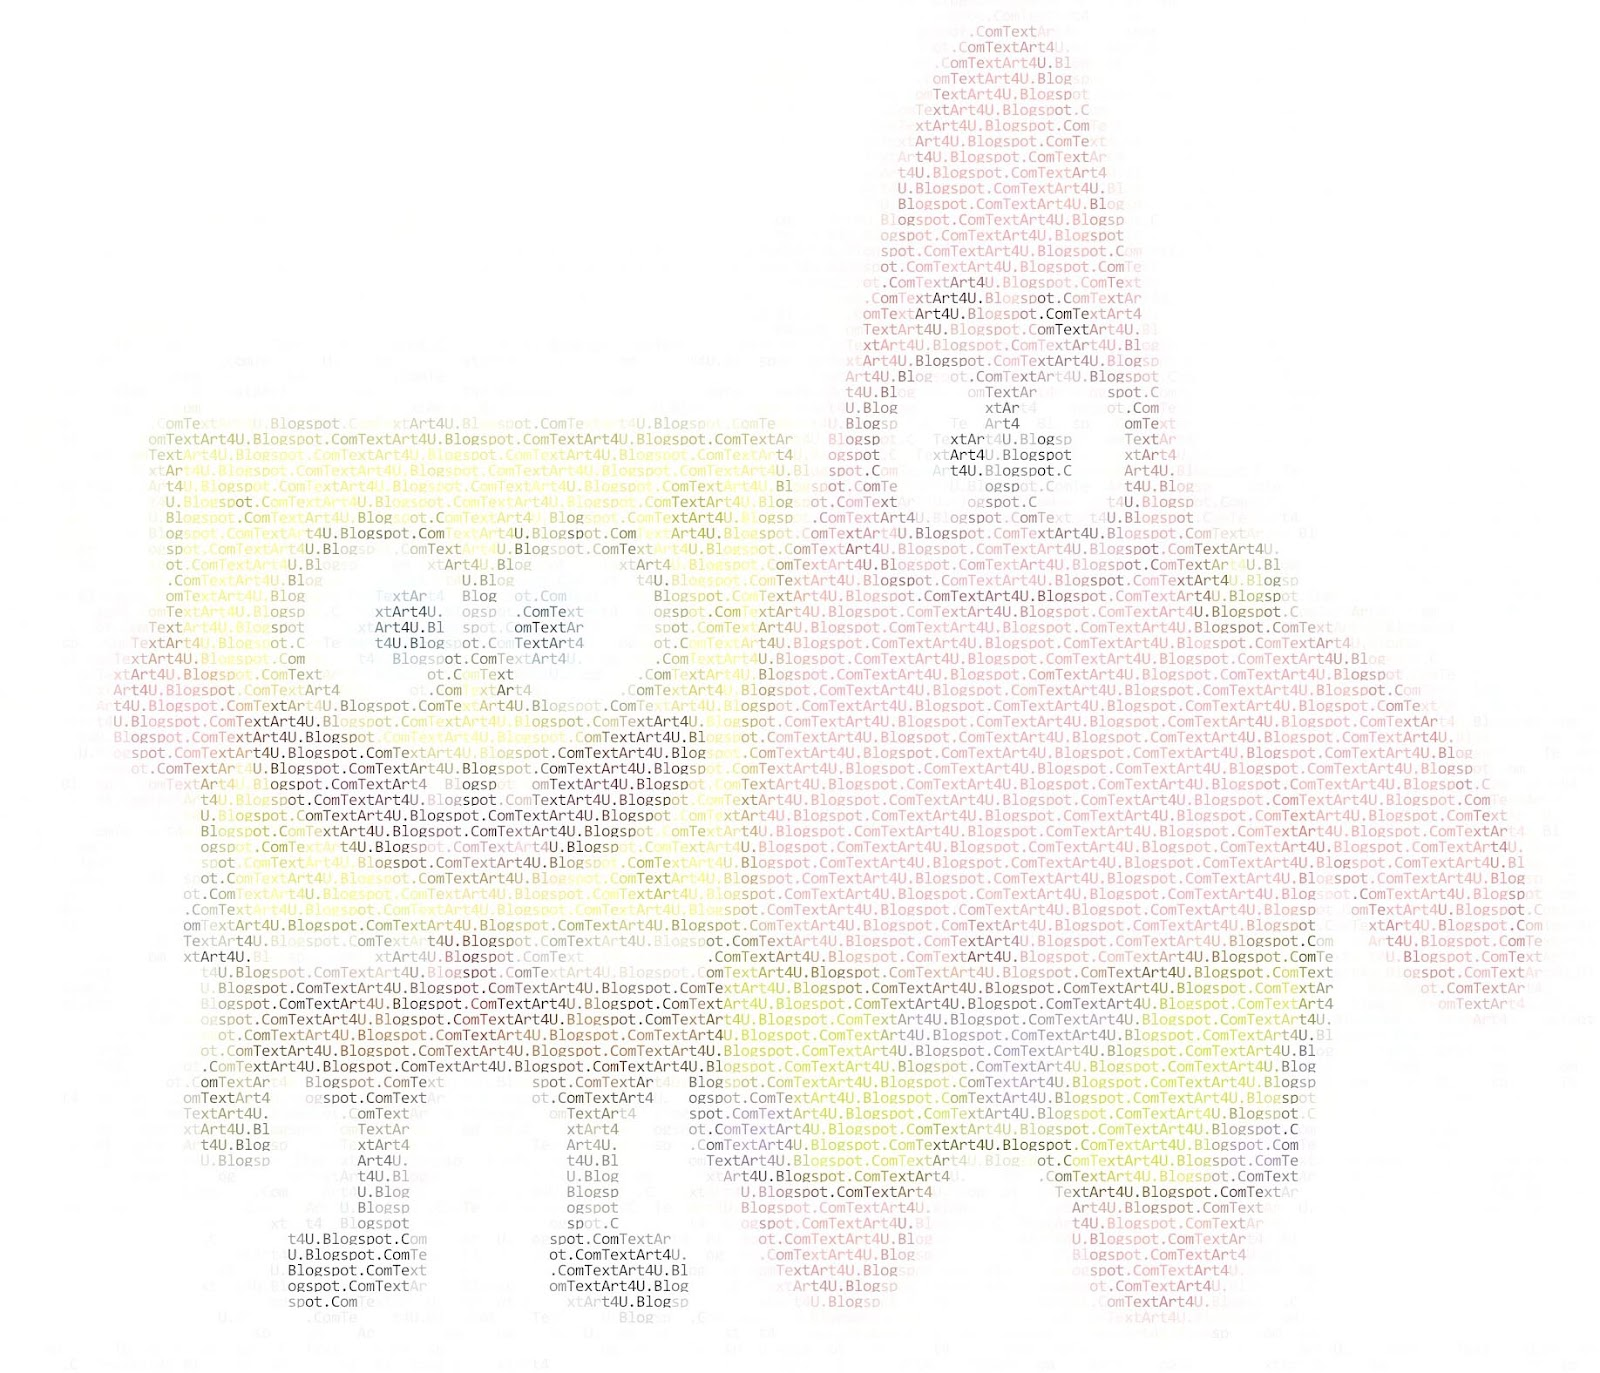 Spongebob ascii text art cool ascii text art 4 u cool ascii text art 4 u biocorpaavc Gallery